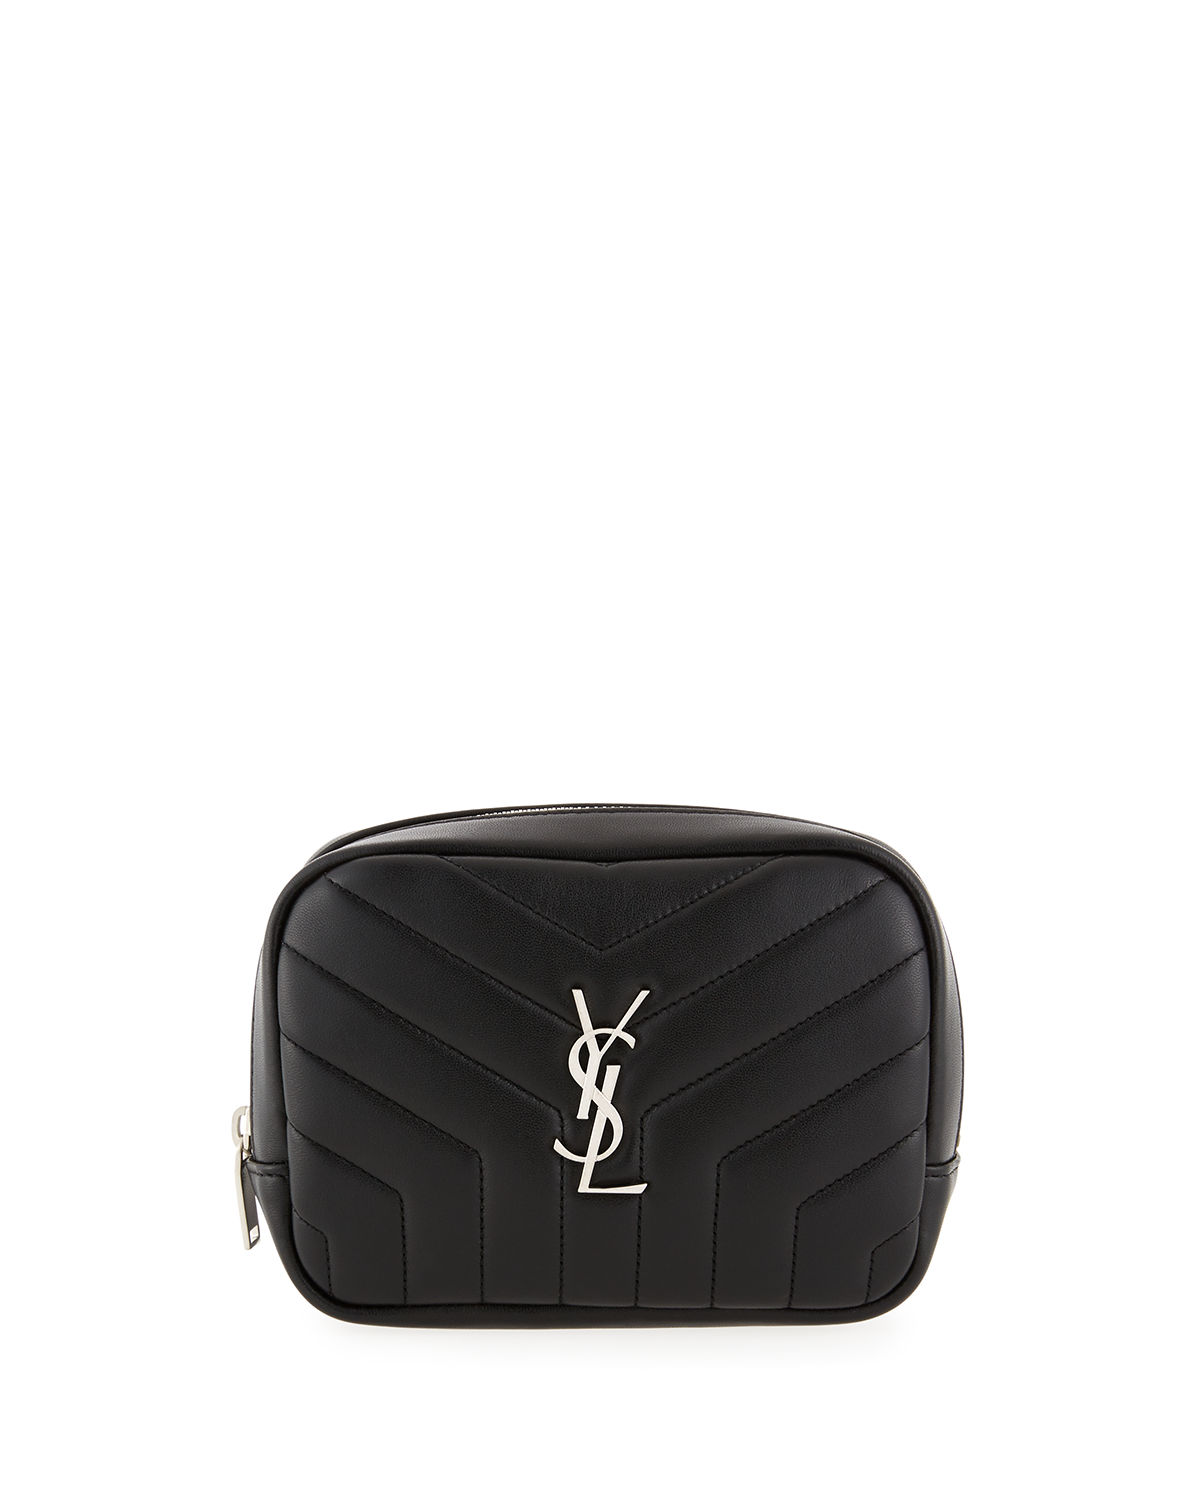 Loulou Monogram Square Quilted Leather Cosmetics Case